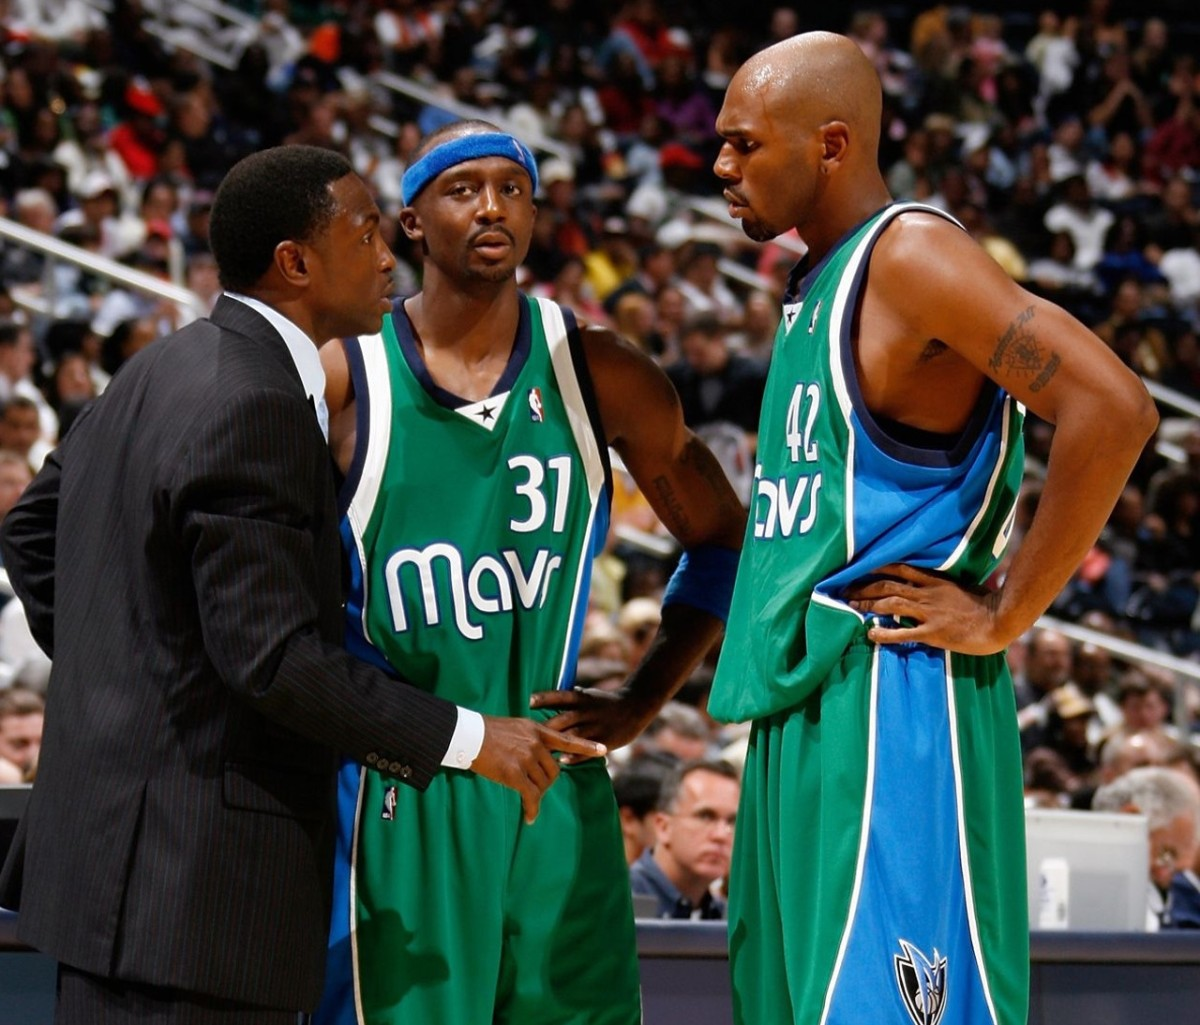 Avery Johnson, Jason Terry and Jerry Stackhouse